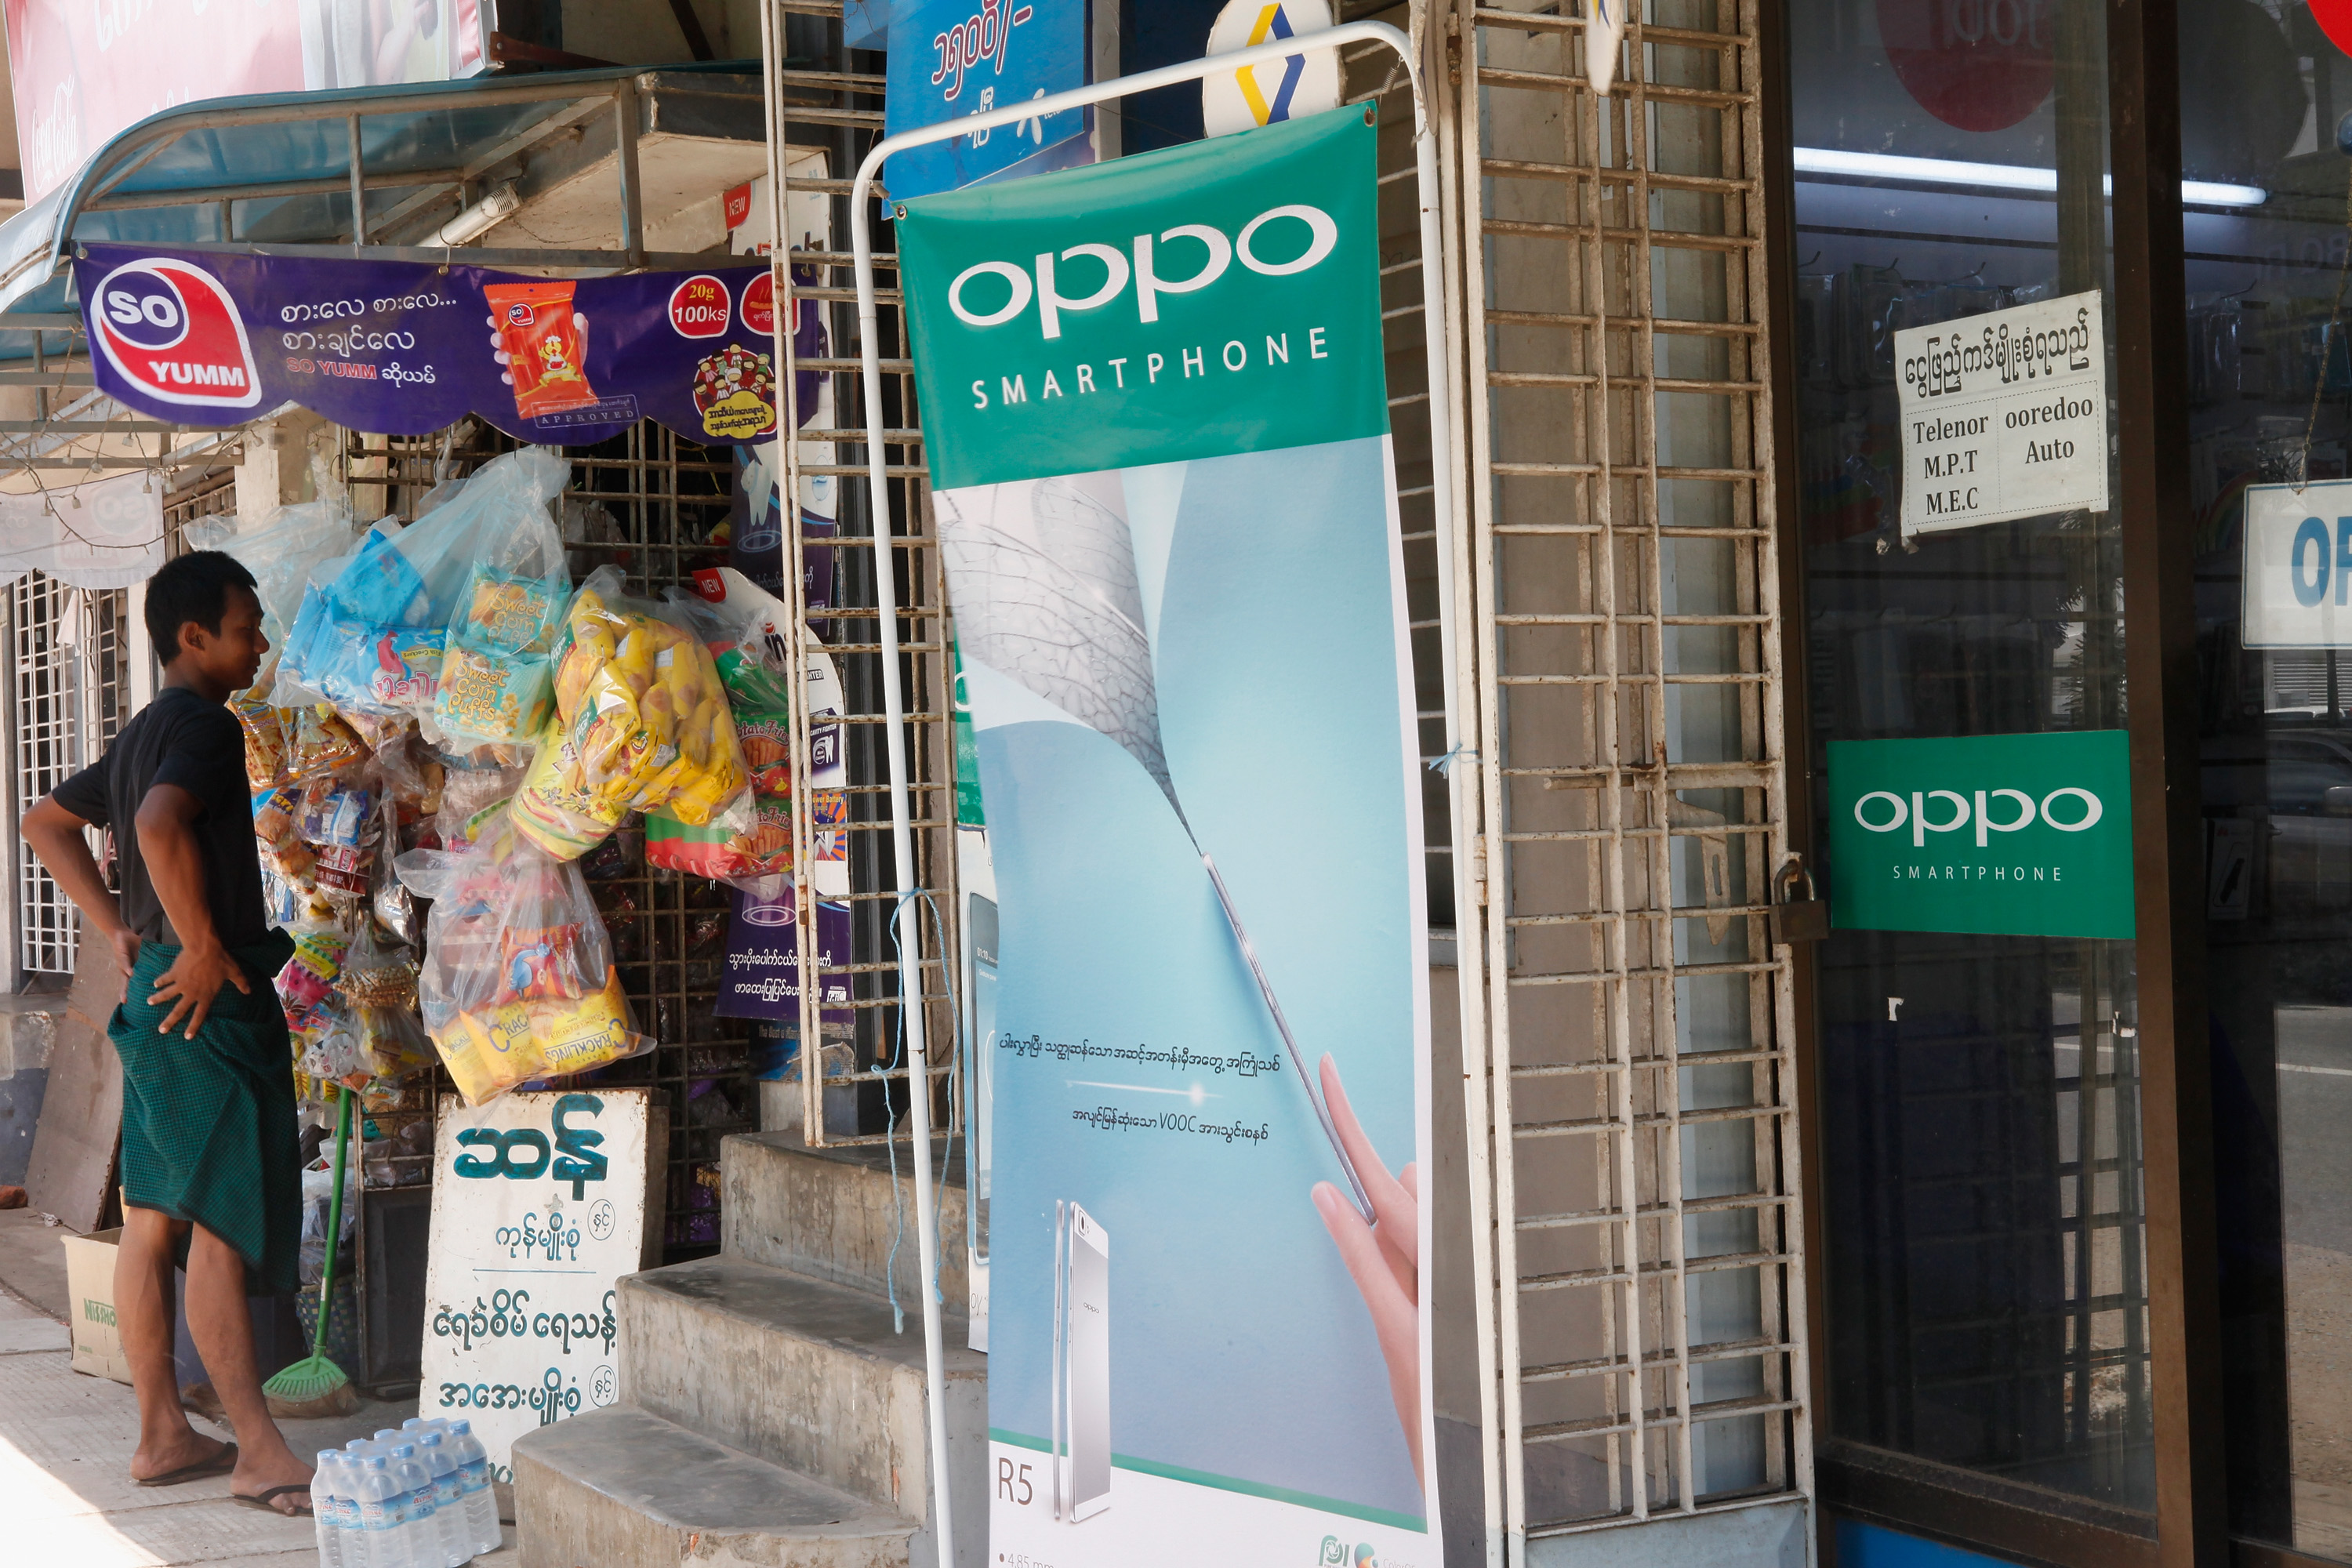 Chinese mobile phone manufacturers Oppo's advertising is in the streets on June 5, 2015 in Yangon, Myanmar.